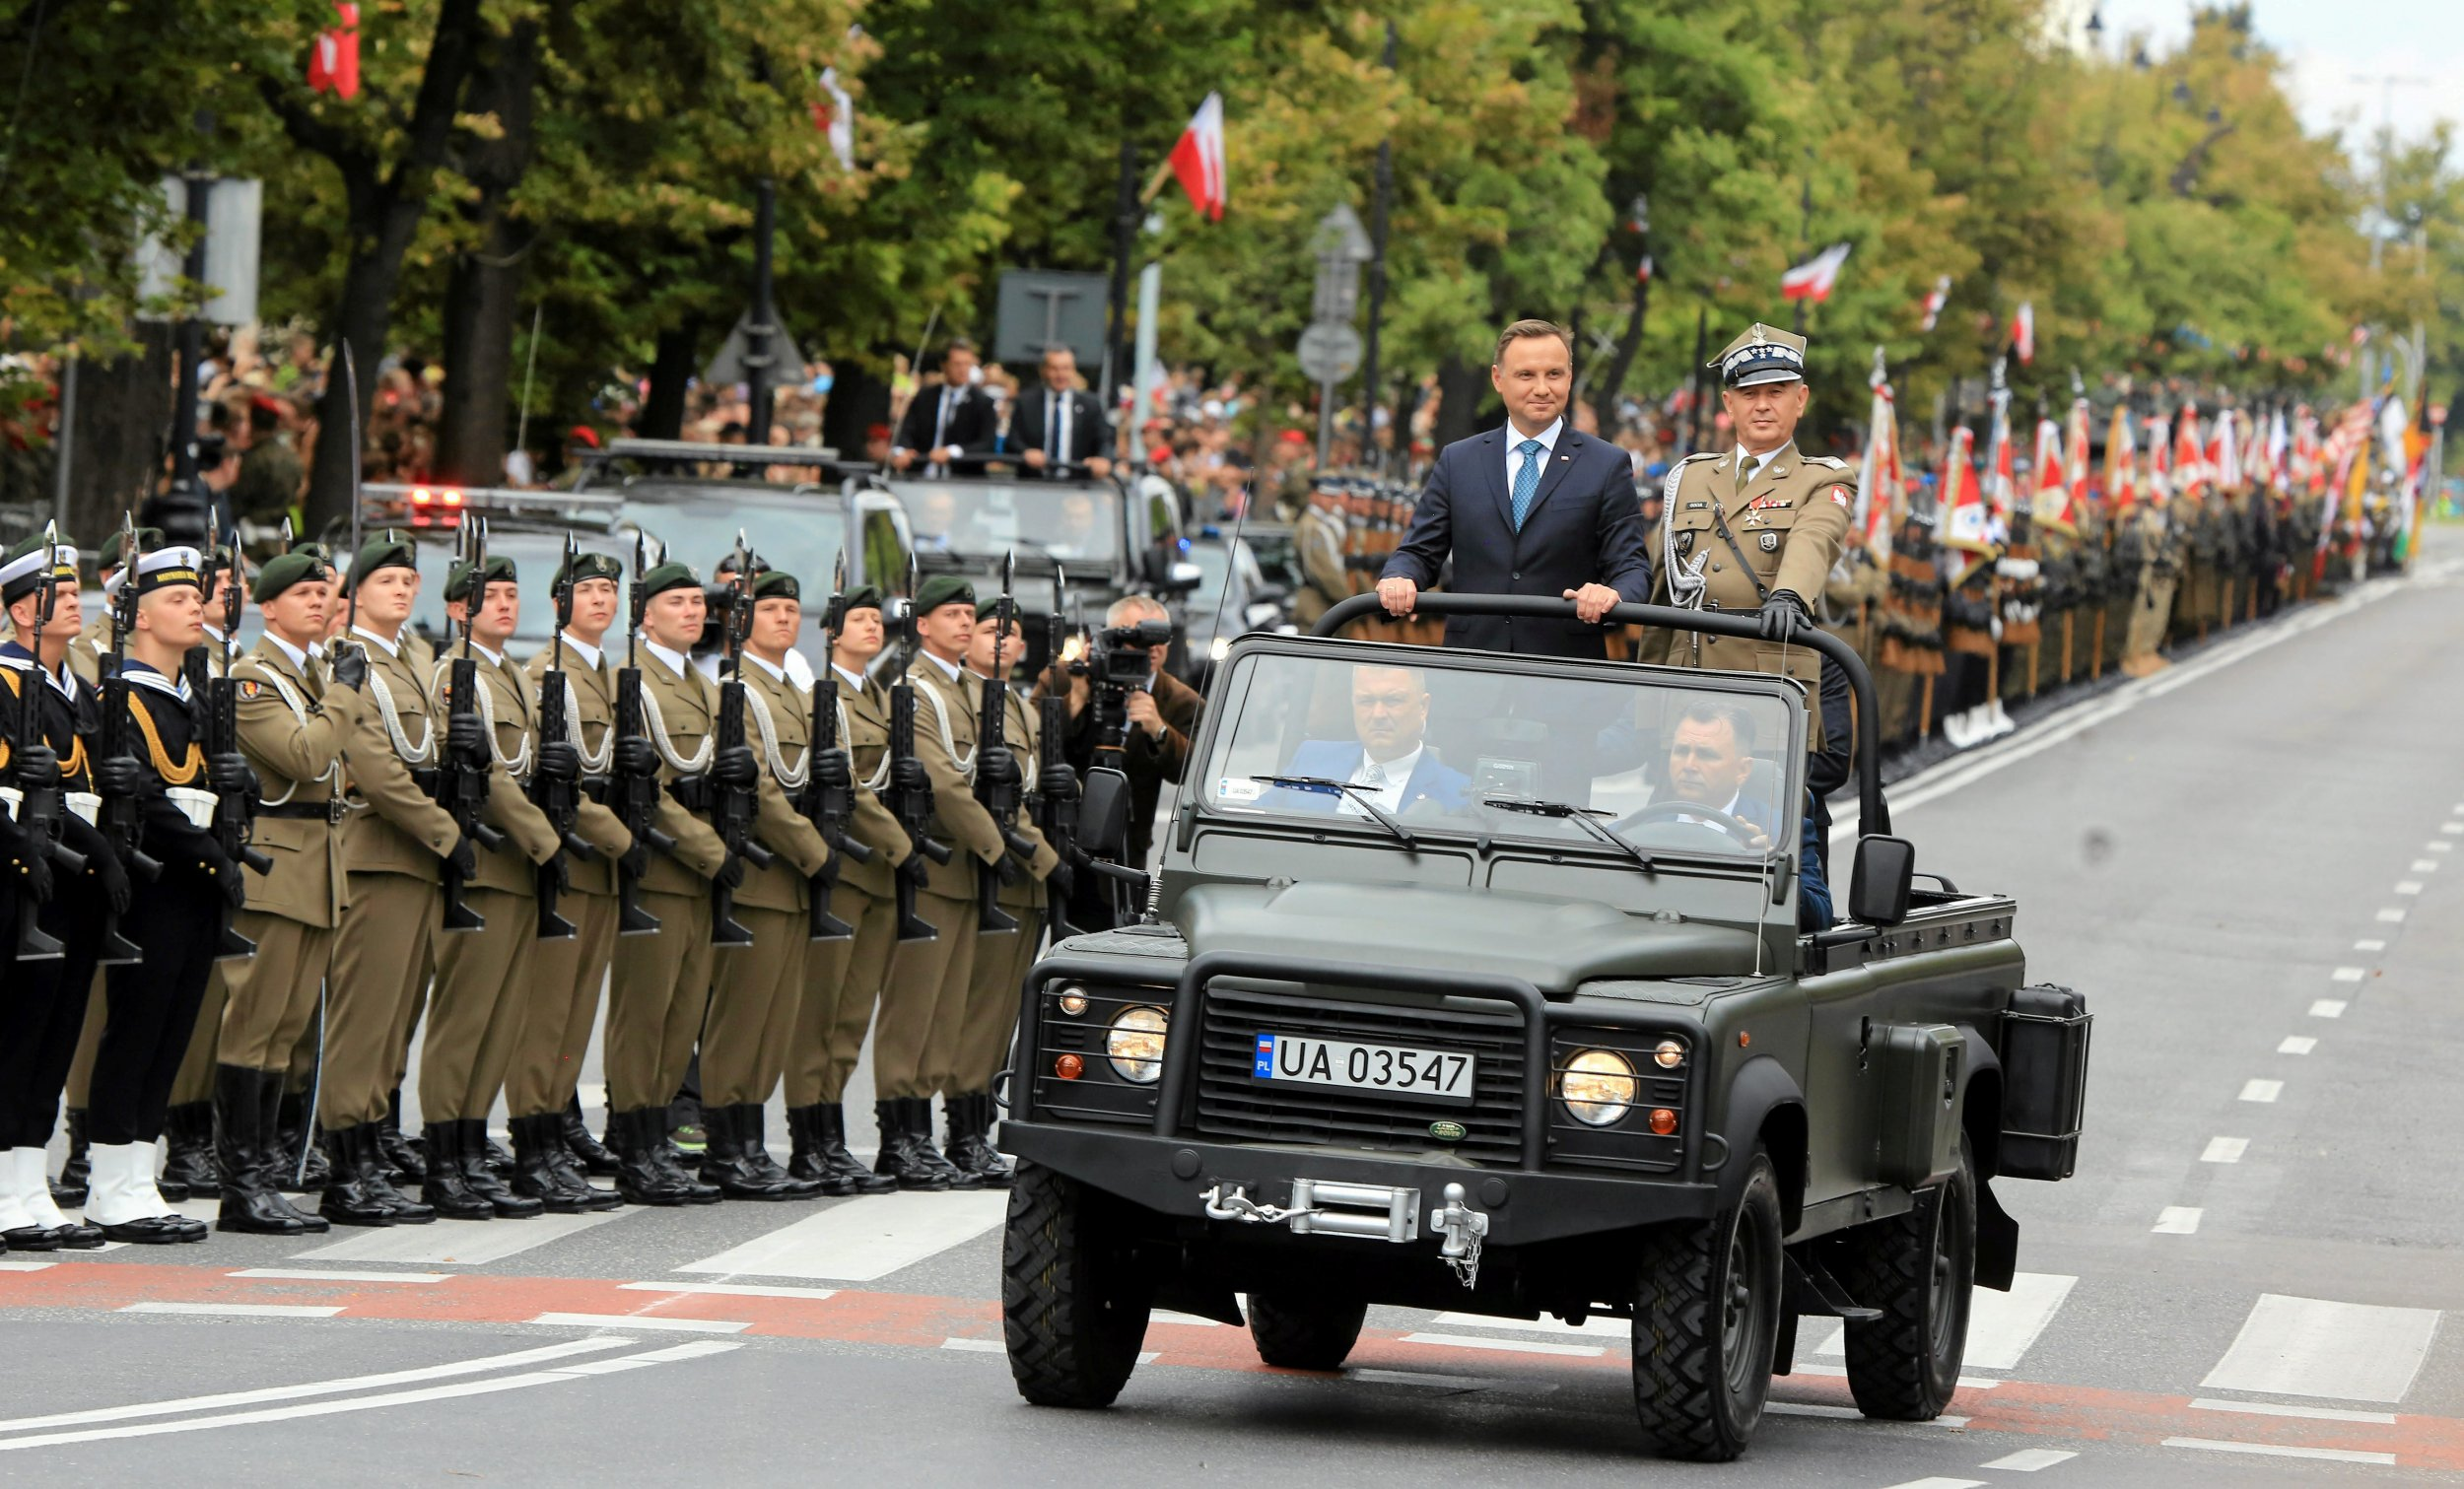 Duda on parade